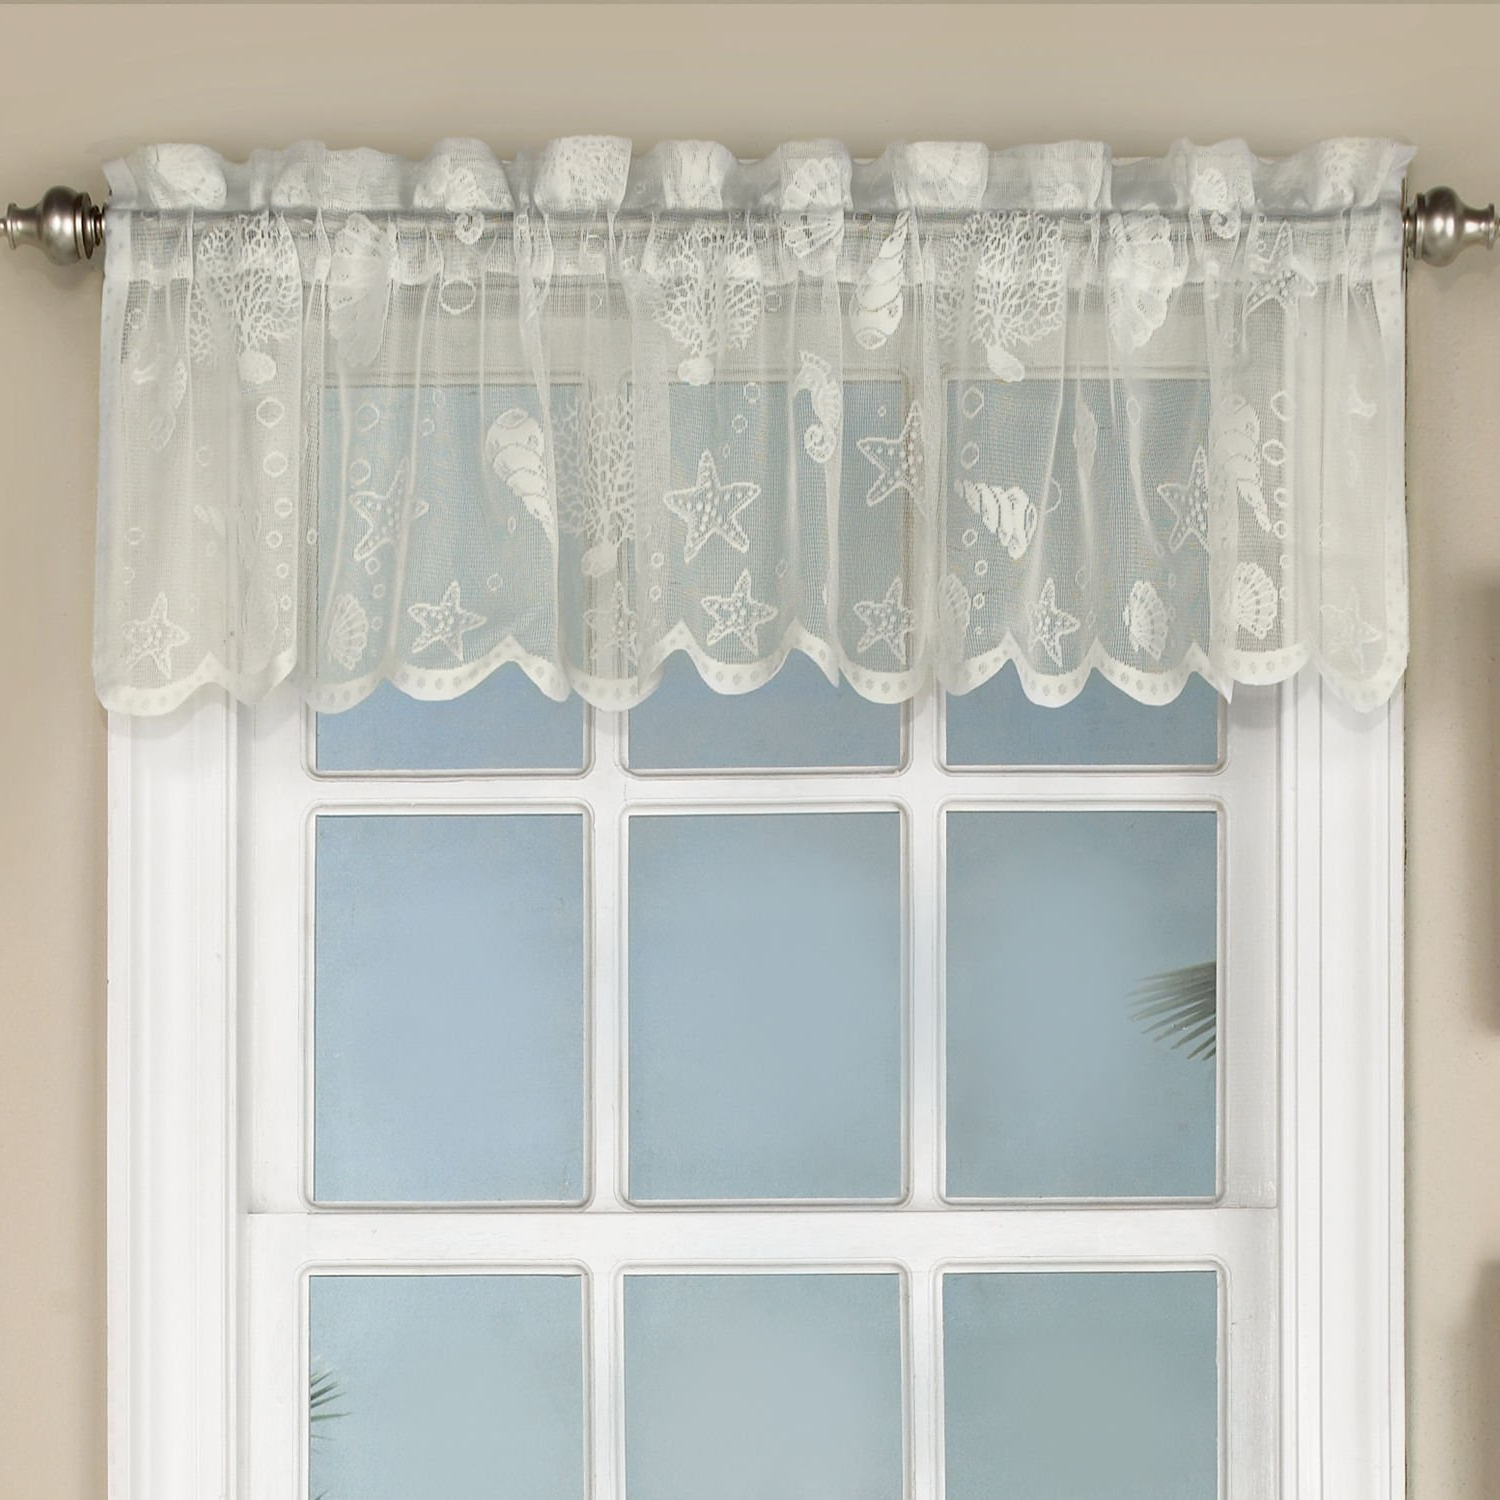 Cheap White Lace Kitchen Curtains, Find White Lace Kitchen Inside Current French Vanilla Country Style Curtain Parts With White Daisy Lace Accent (View 17 of 20)